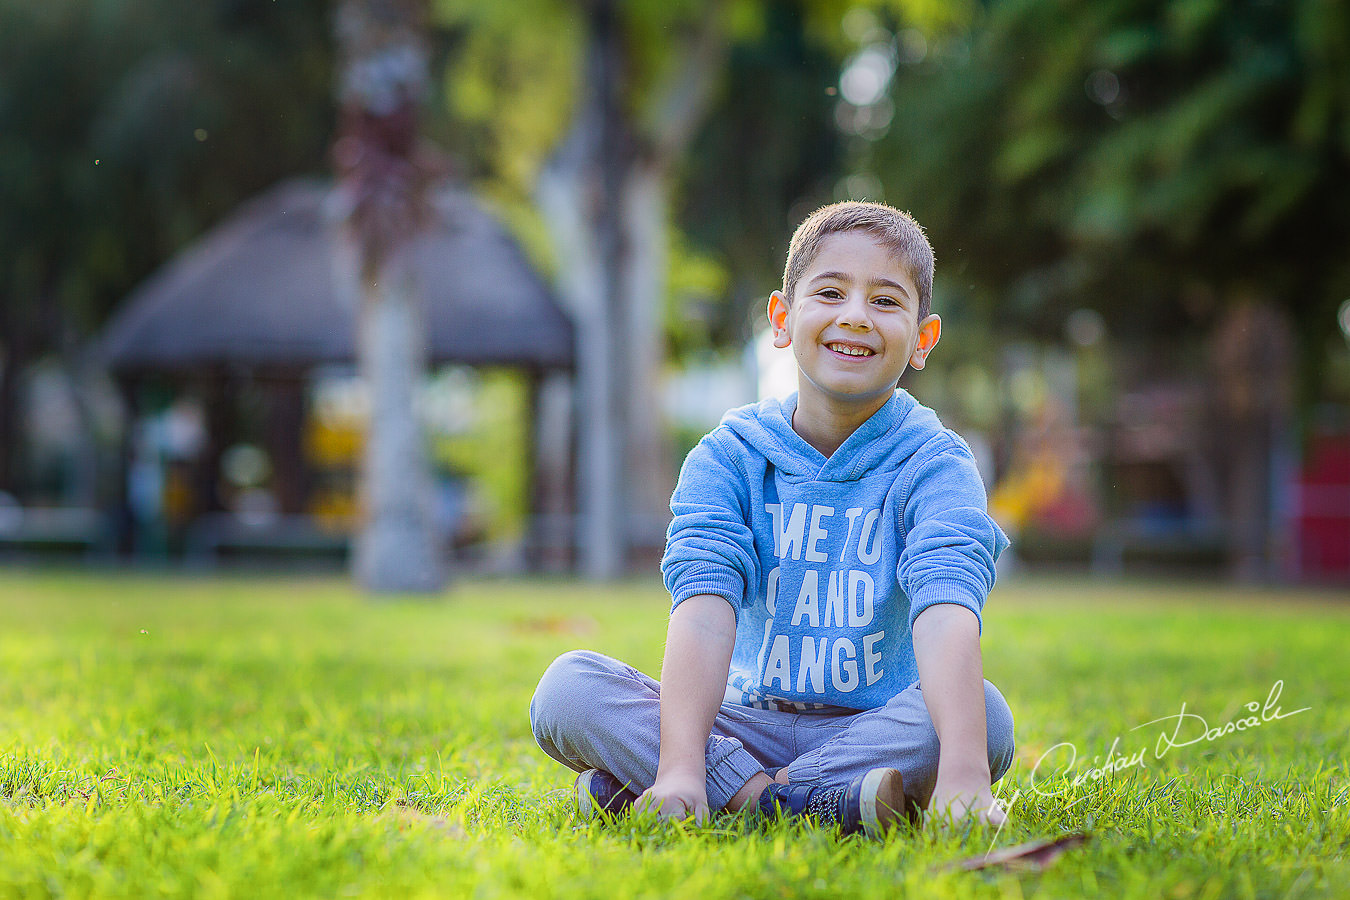 Handsome young boy in the park, moments captured by Cristian Dascalu during a beautiful Limassol family photography photo session.